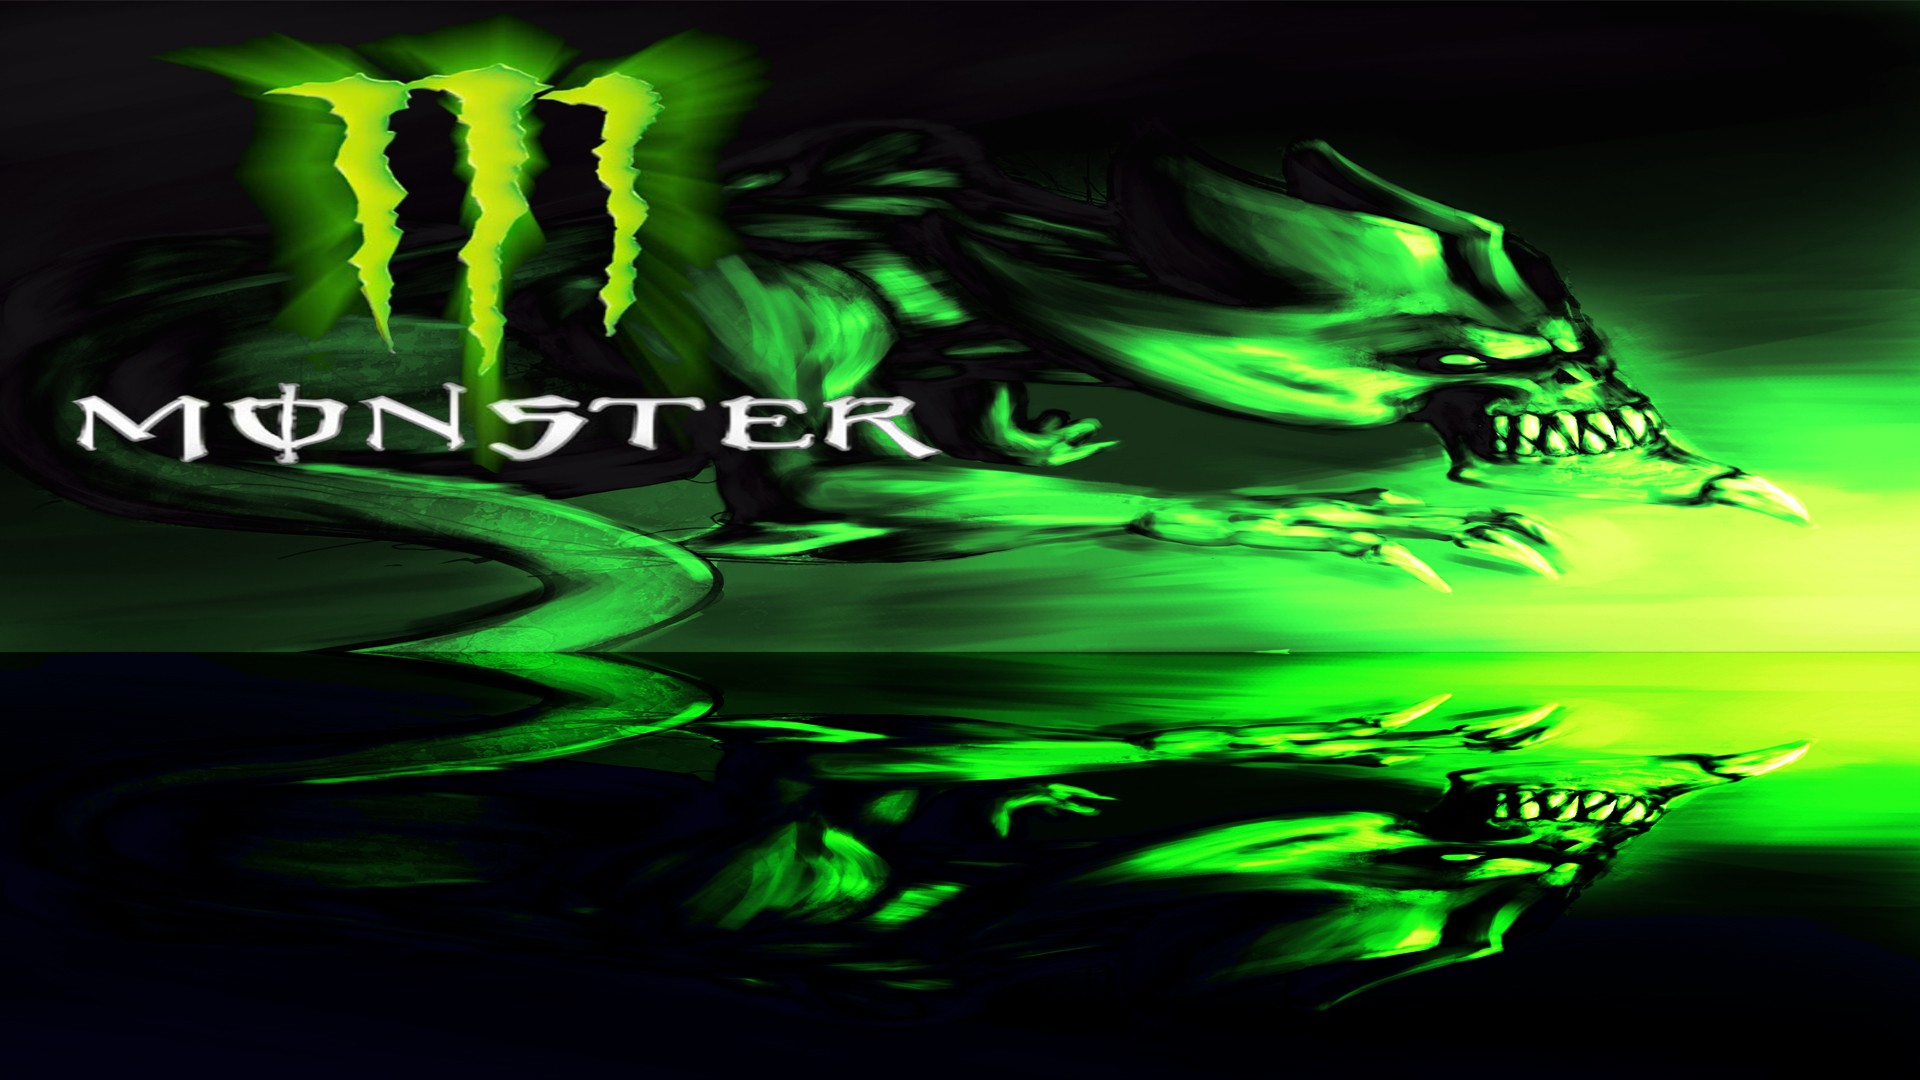 Leave a Reply Cancel reply: www.hdwallpaper.nu/monster-energy-wallpapers